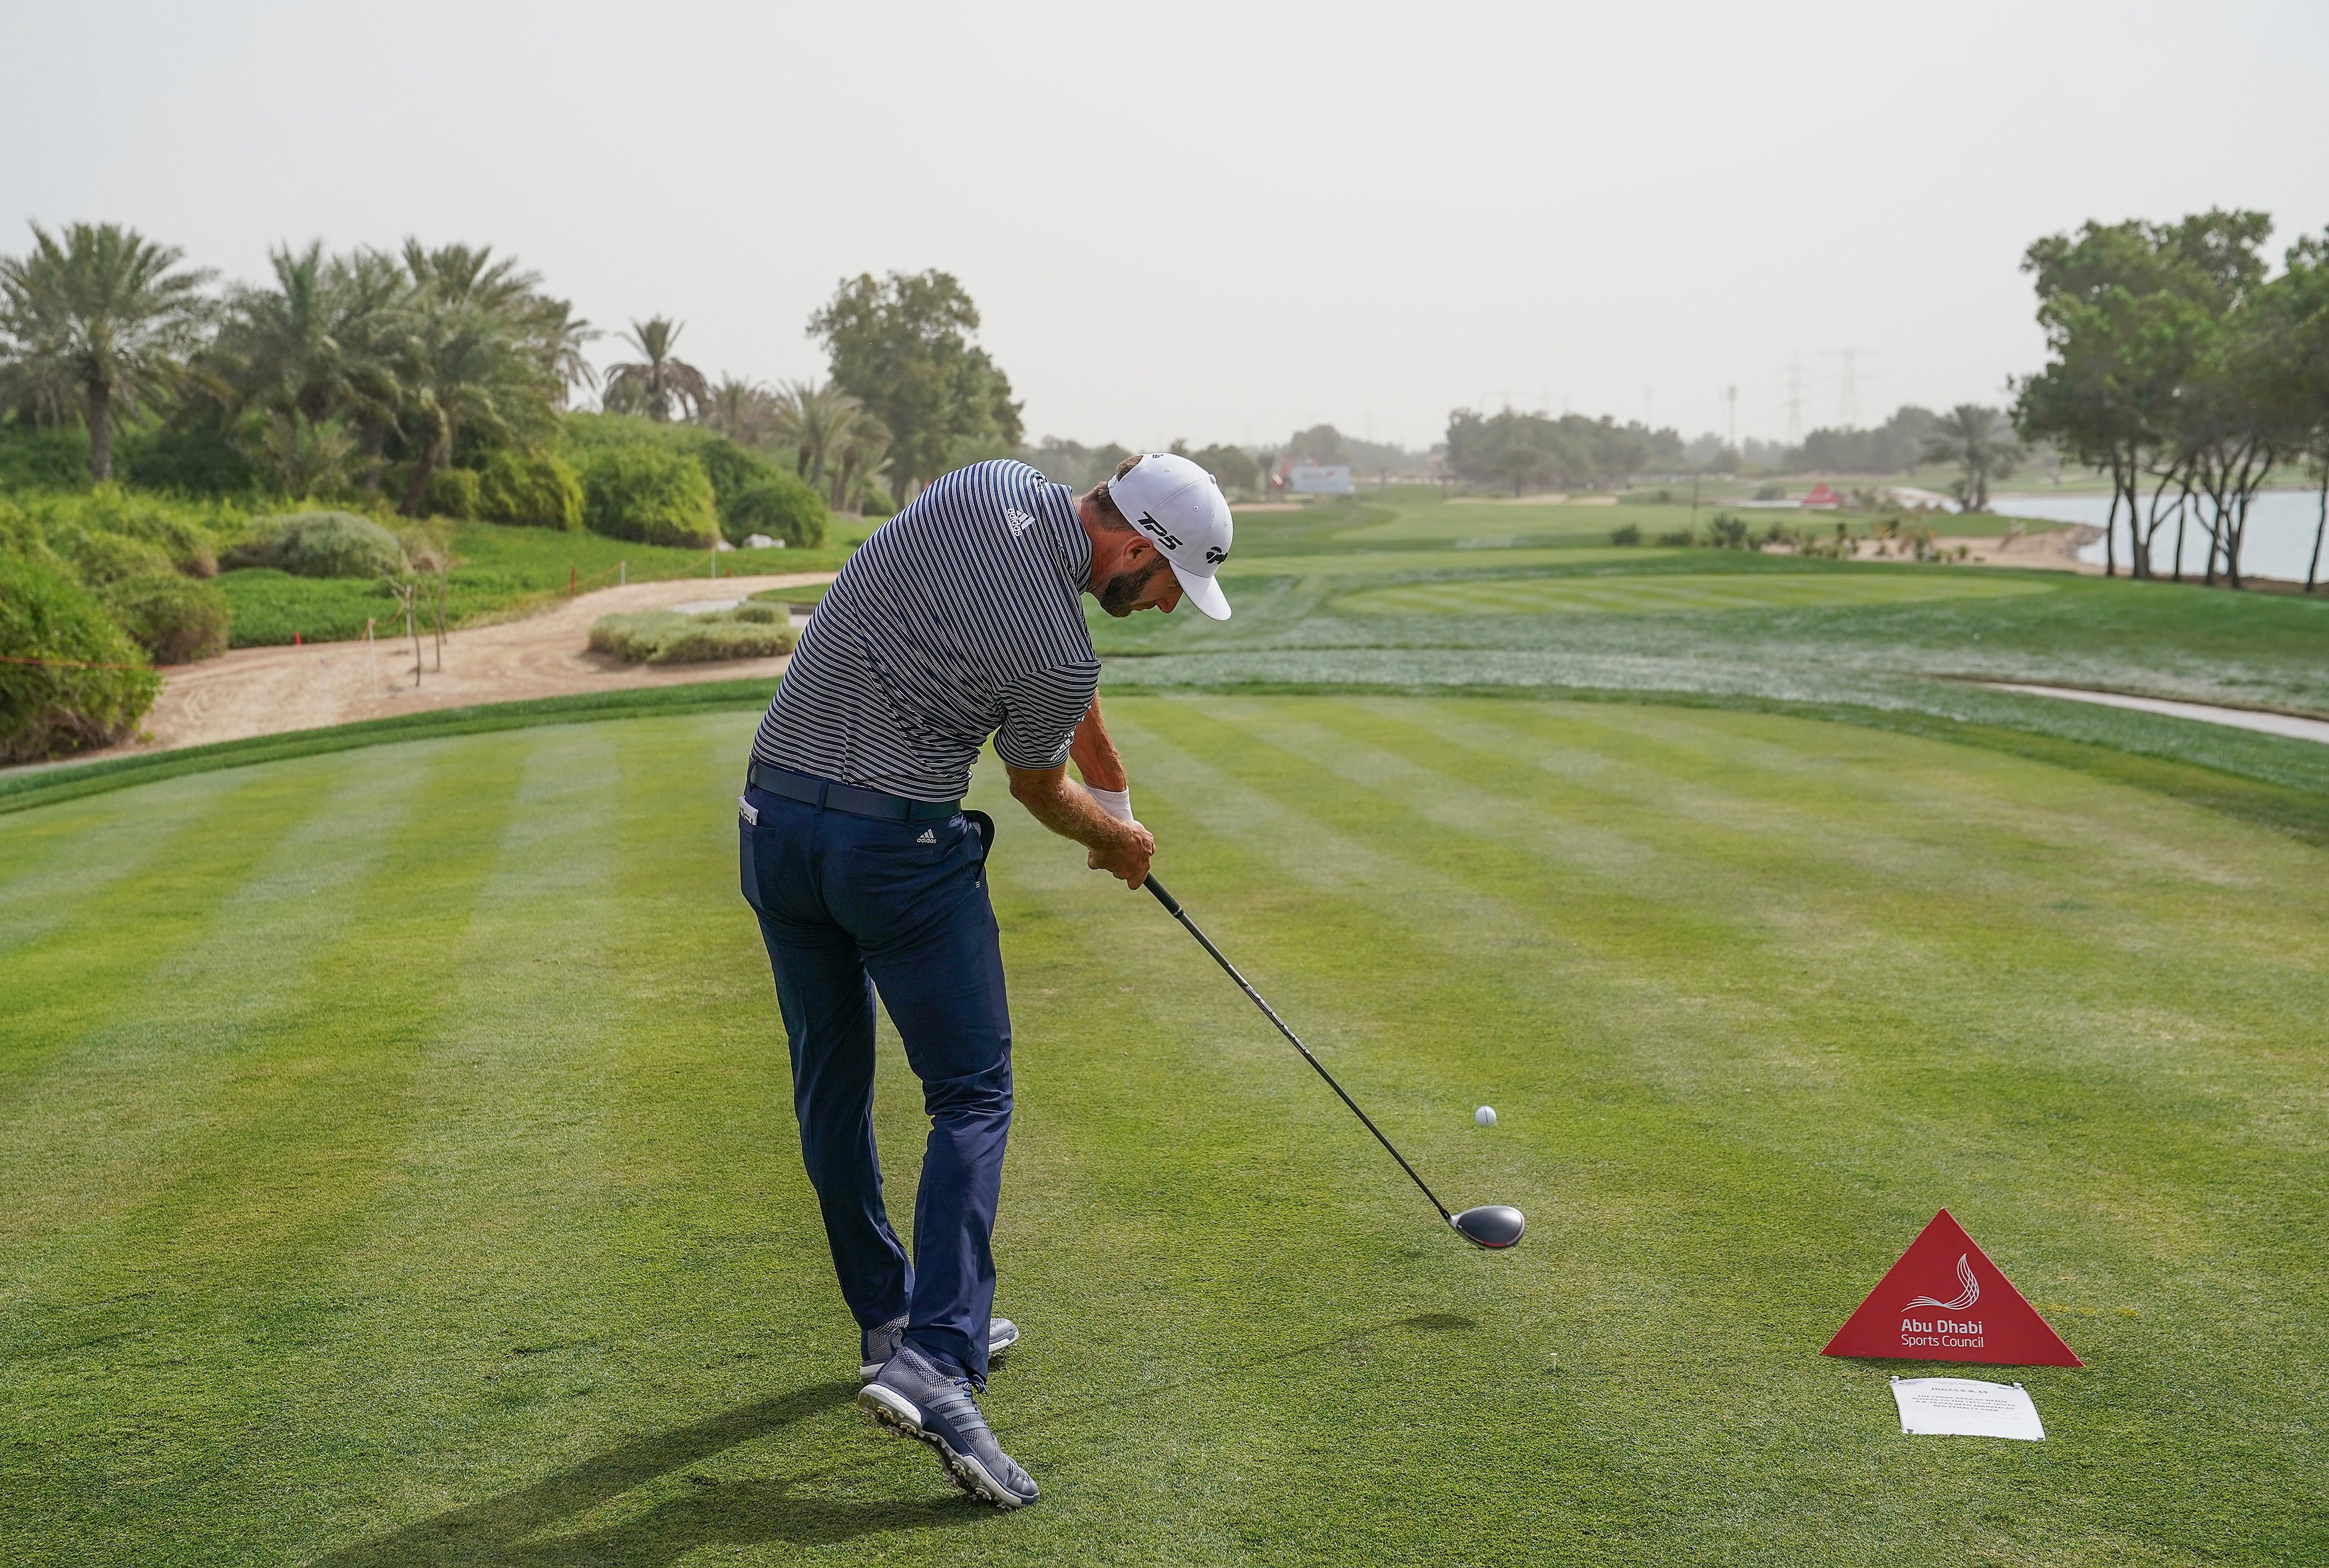 Dustin Johnson swing sequence, introduction